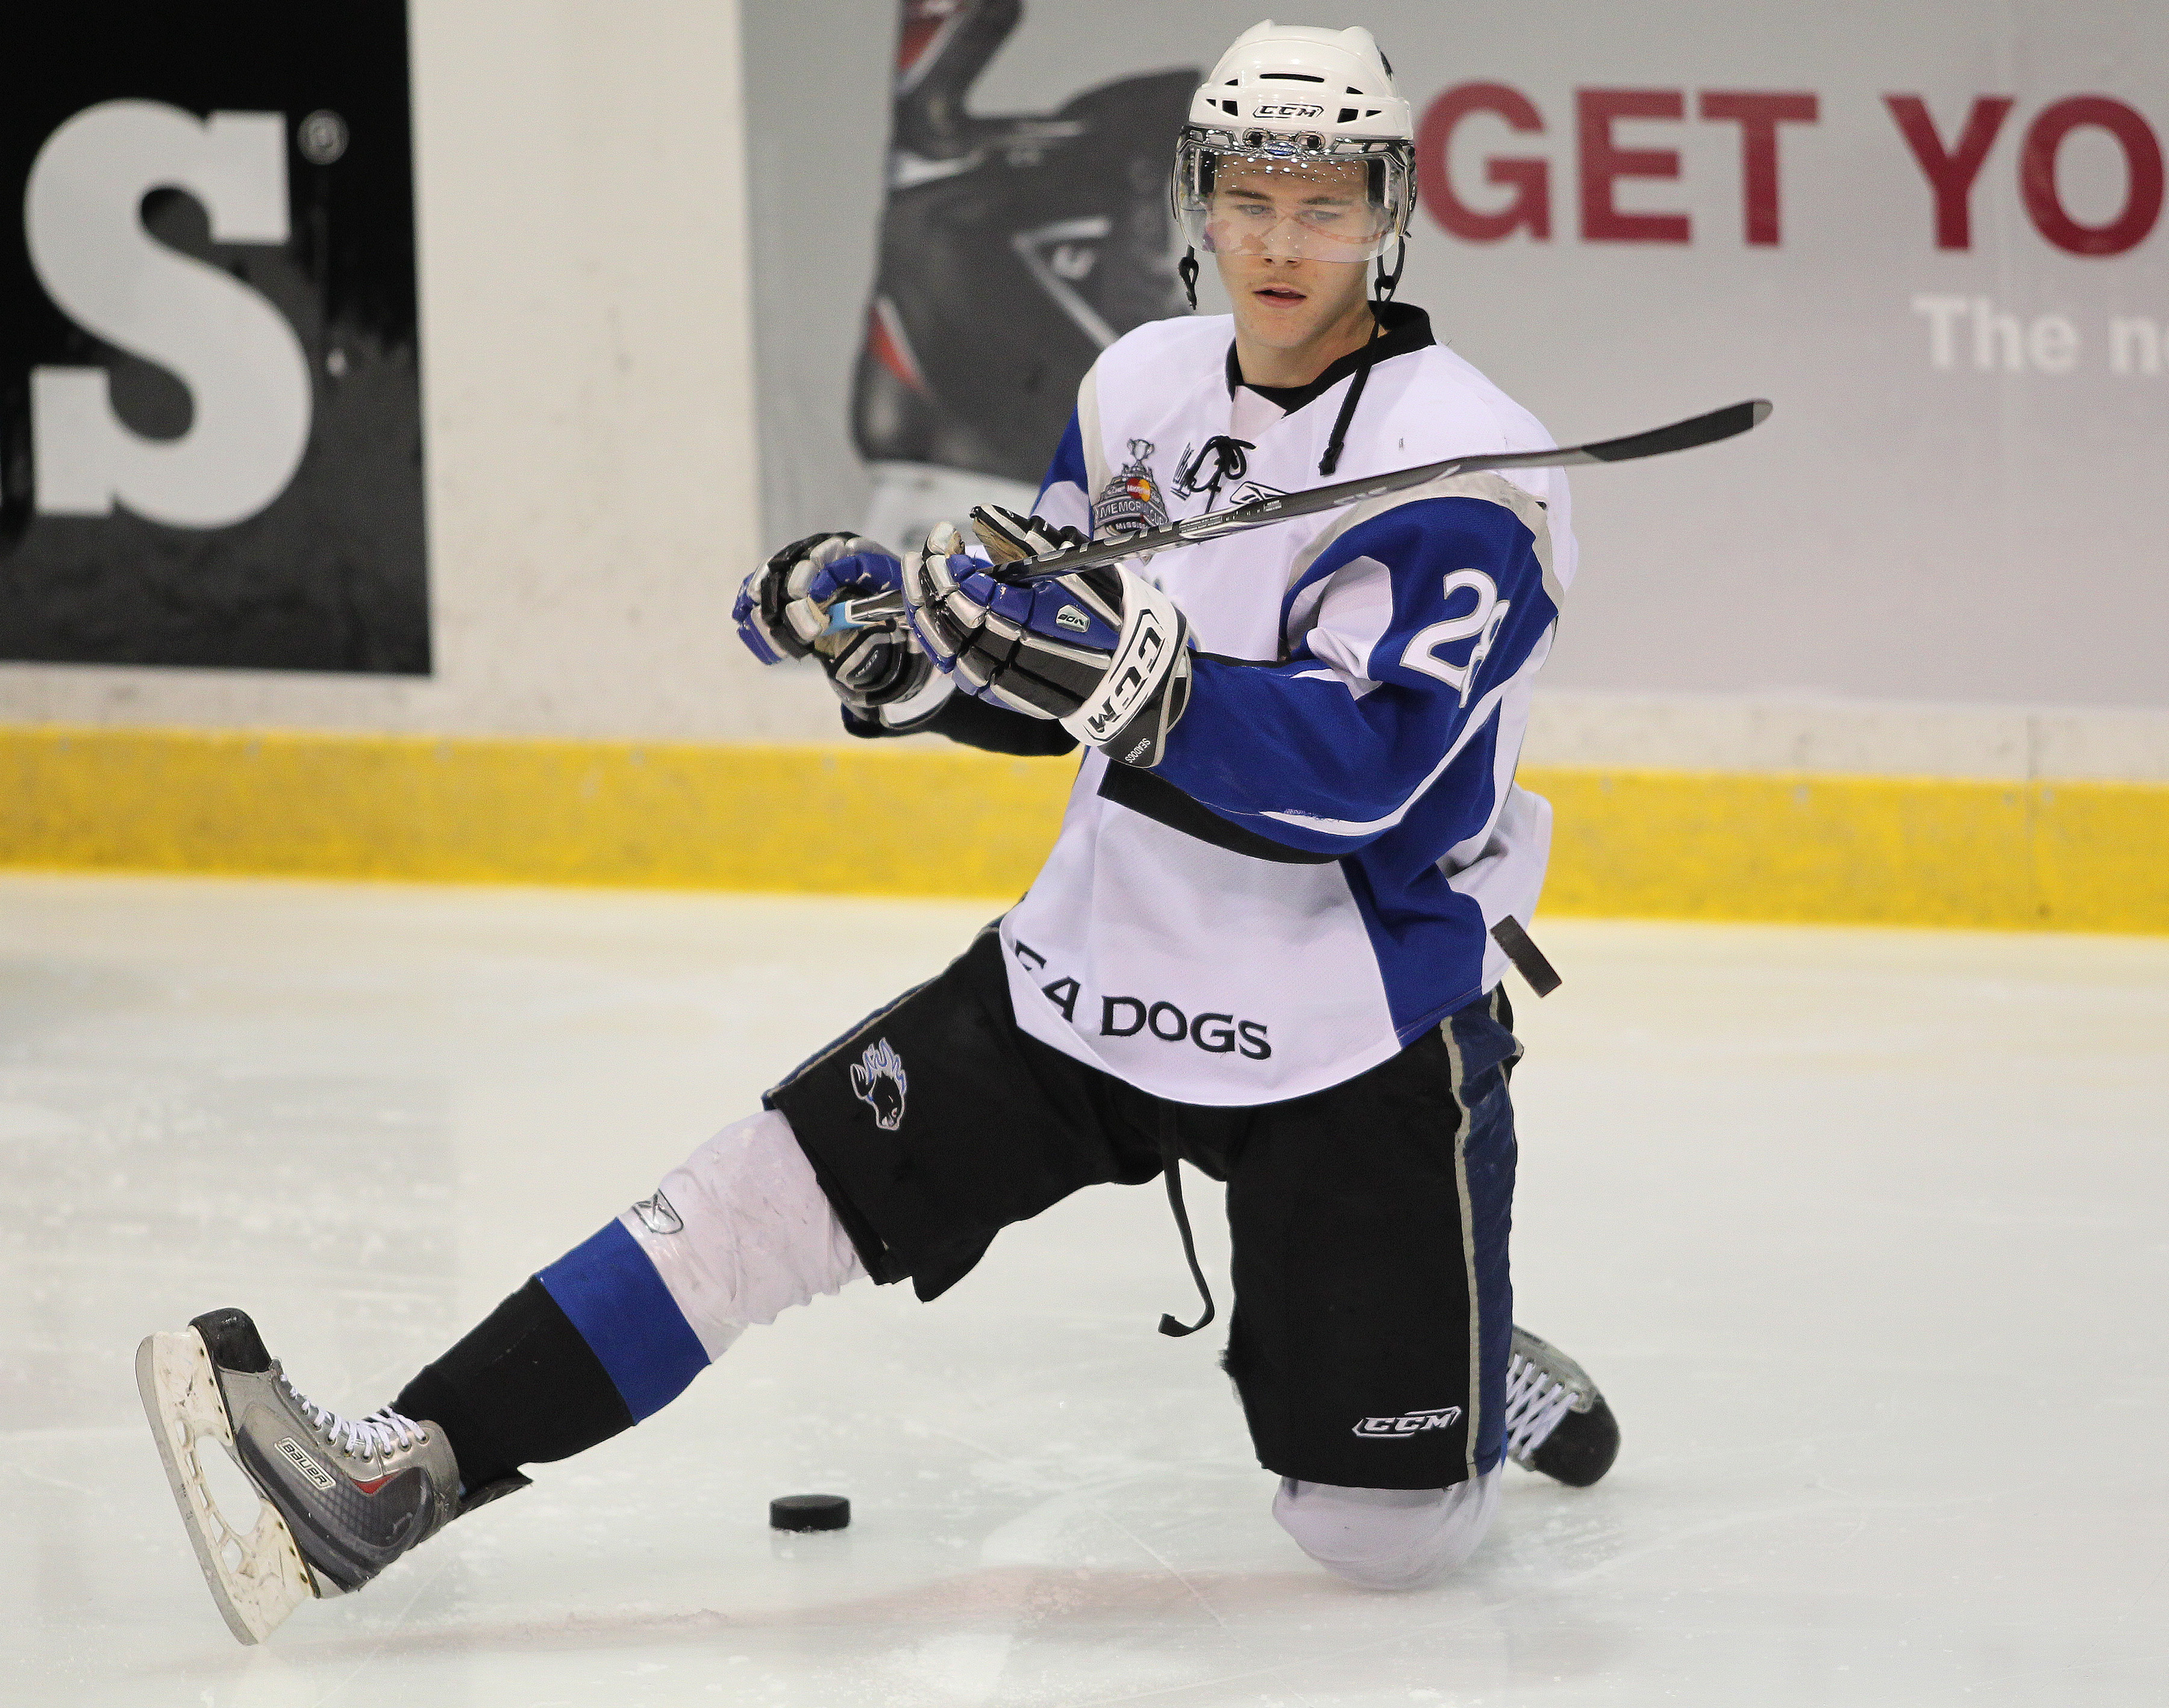 MISSISSAUGA, CANADA - MAY 20:  Nathan Beaulieu #28 of the Saint John Sea Dogs gets ready during the warm-up prior to facing the Mississauga St. Michael's Majors in the opening game of the 2011 Mastercard Memorial Cup at the Hershey Centre in Mississauga,